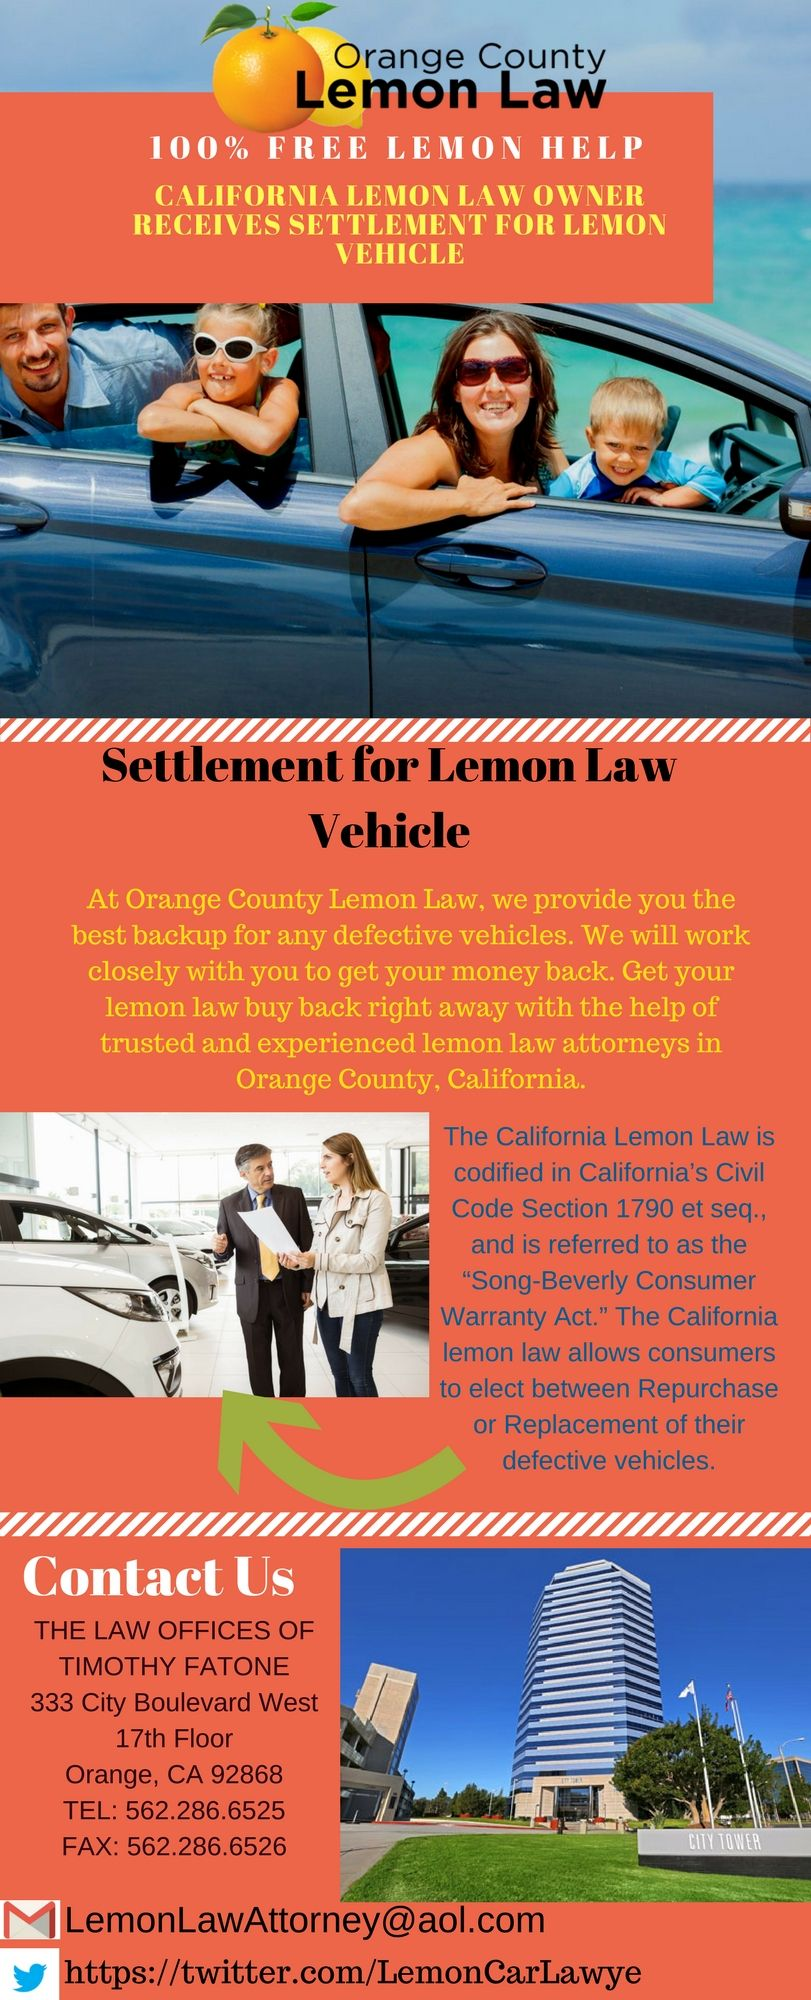 Call now to speak directly with Orange County Lemon Law